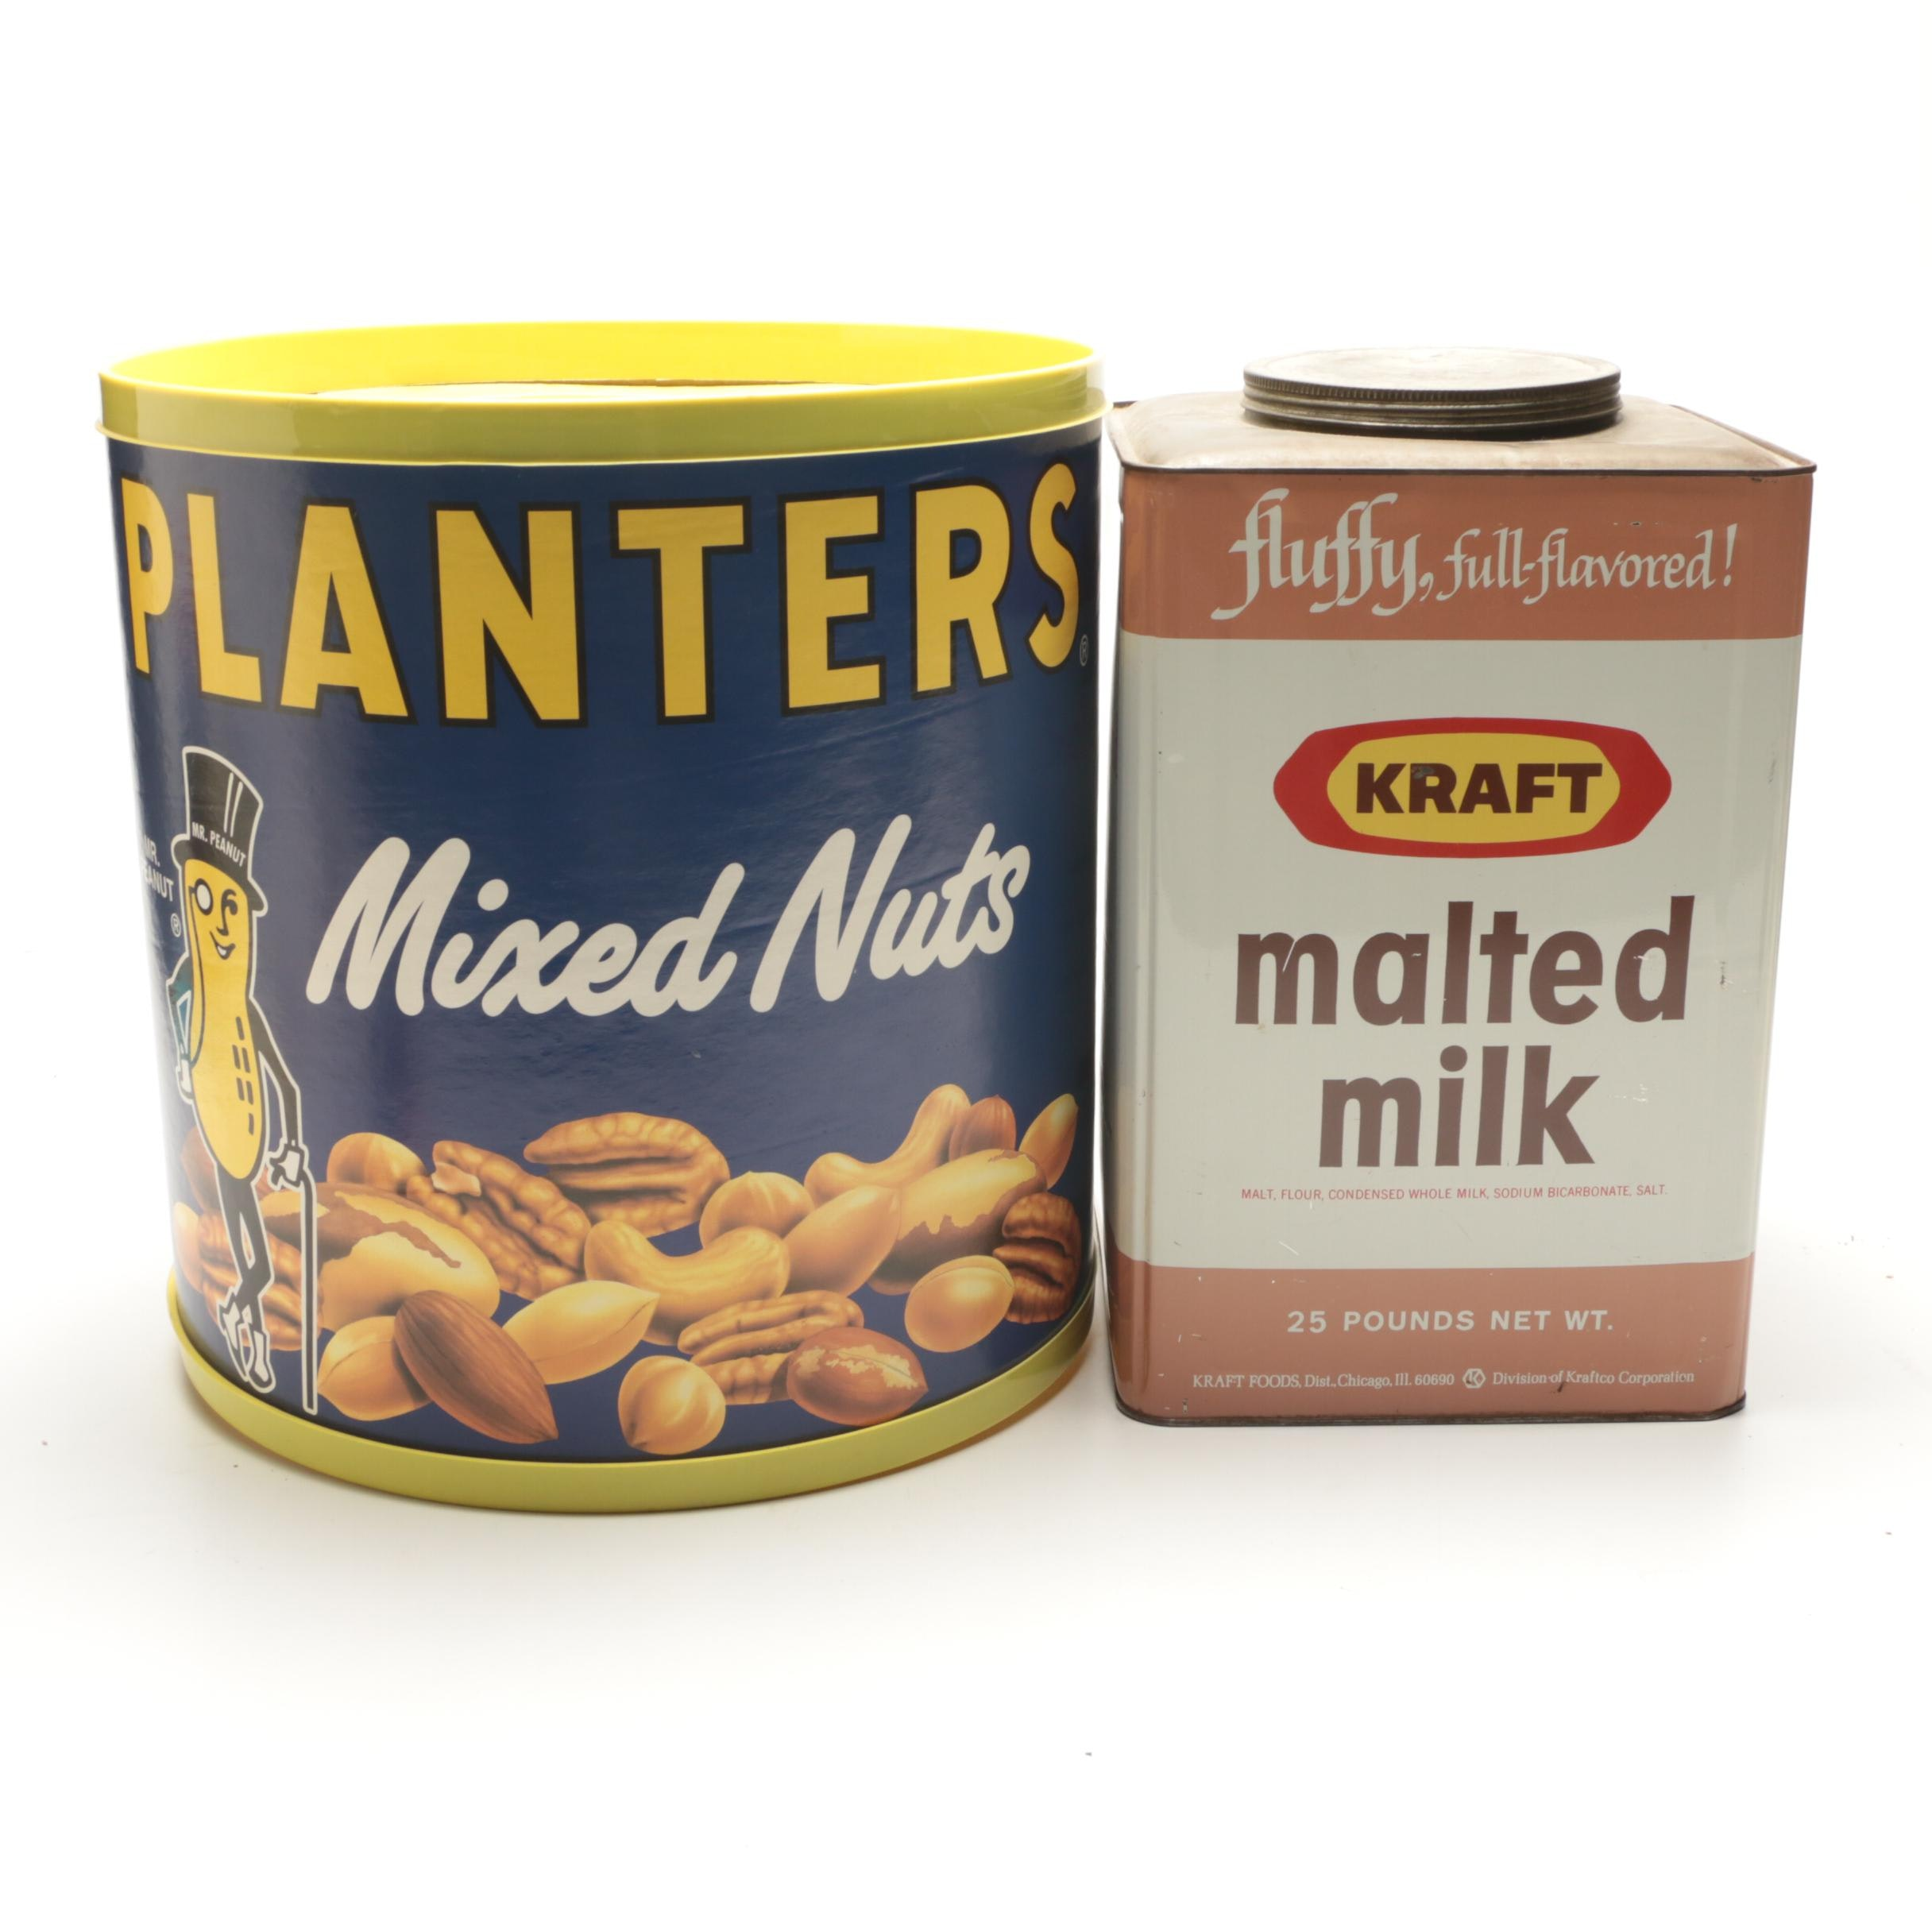 Planters Mixed Nuts Display with Kraft 25 Pound Malted Milk Tin